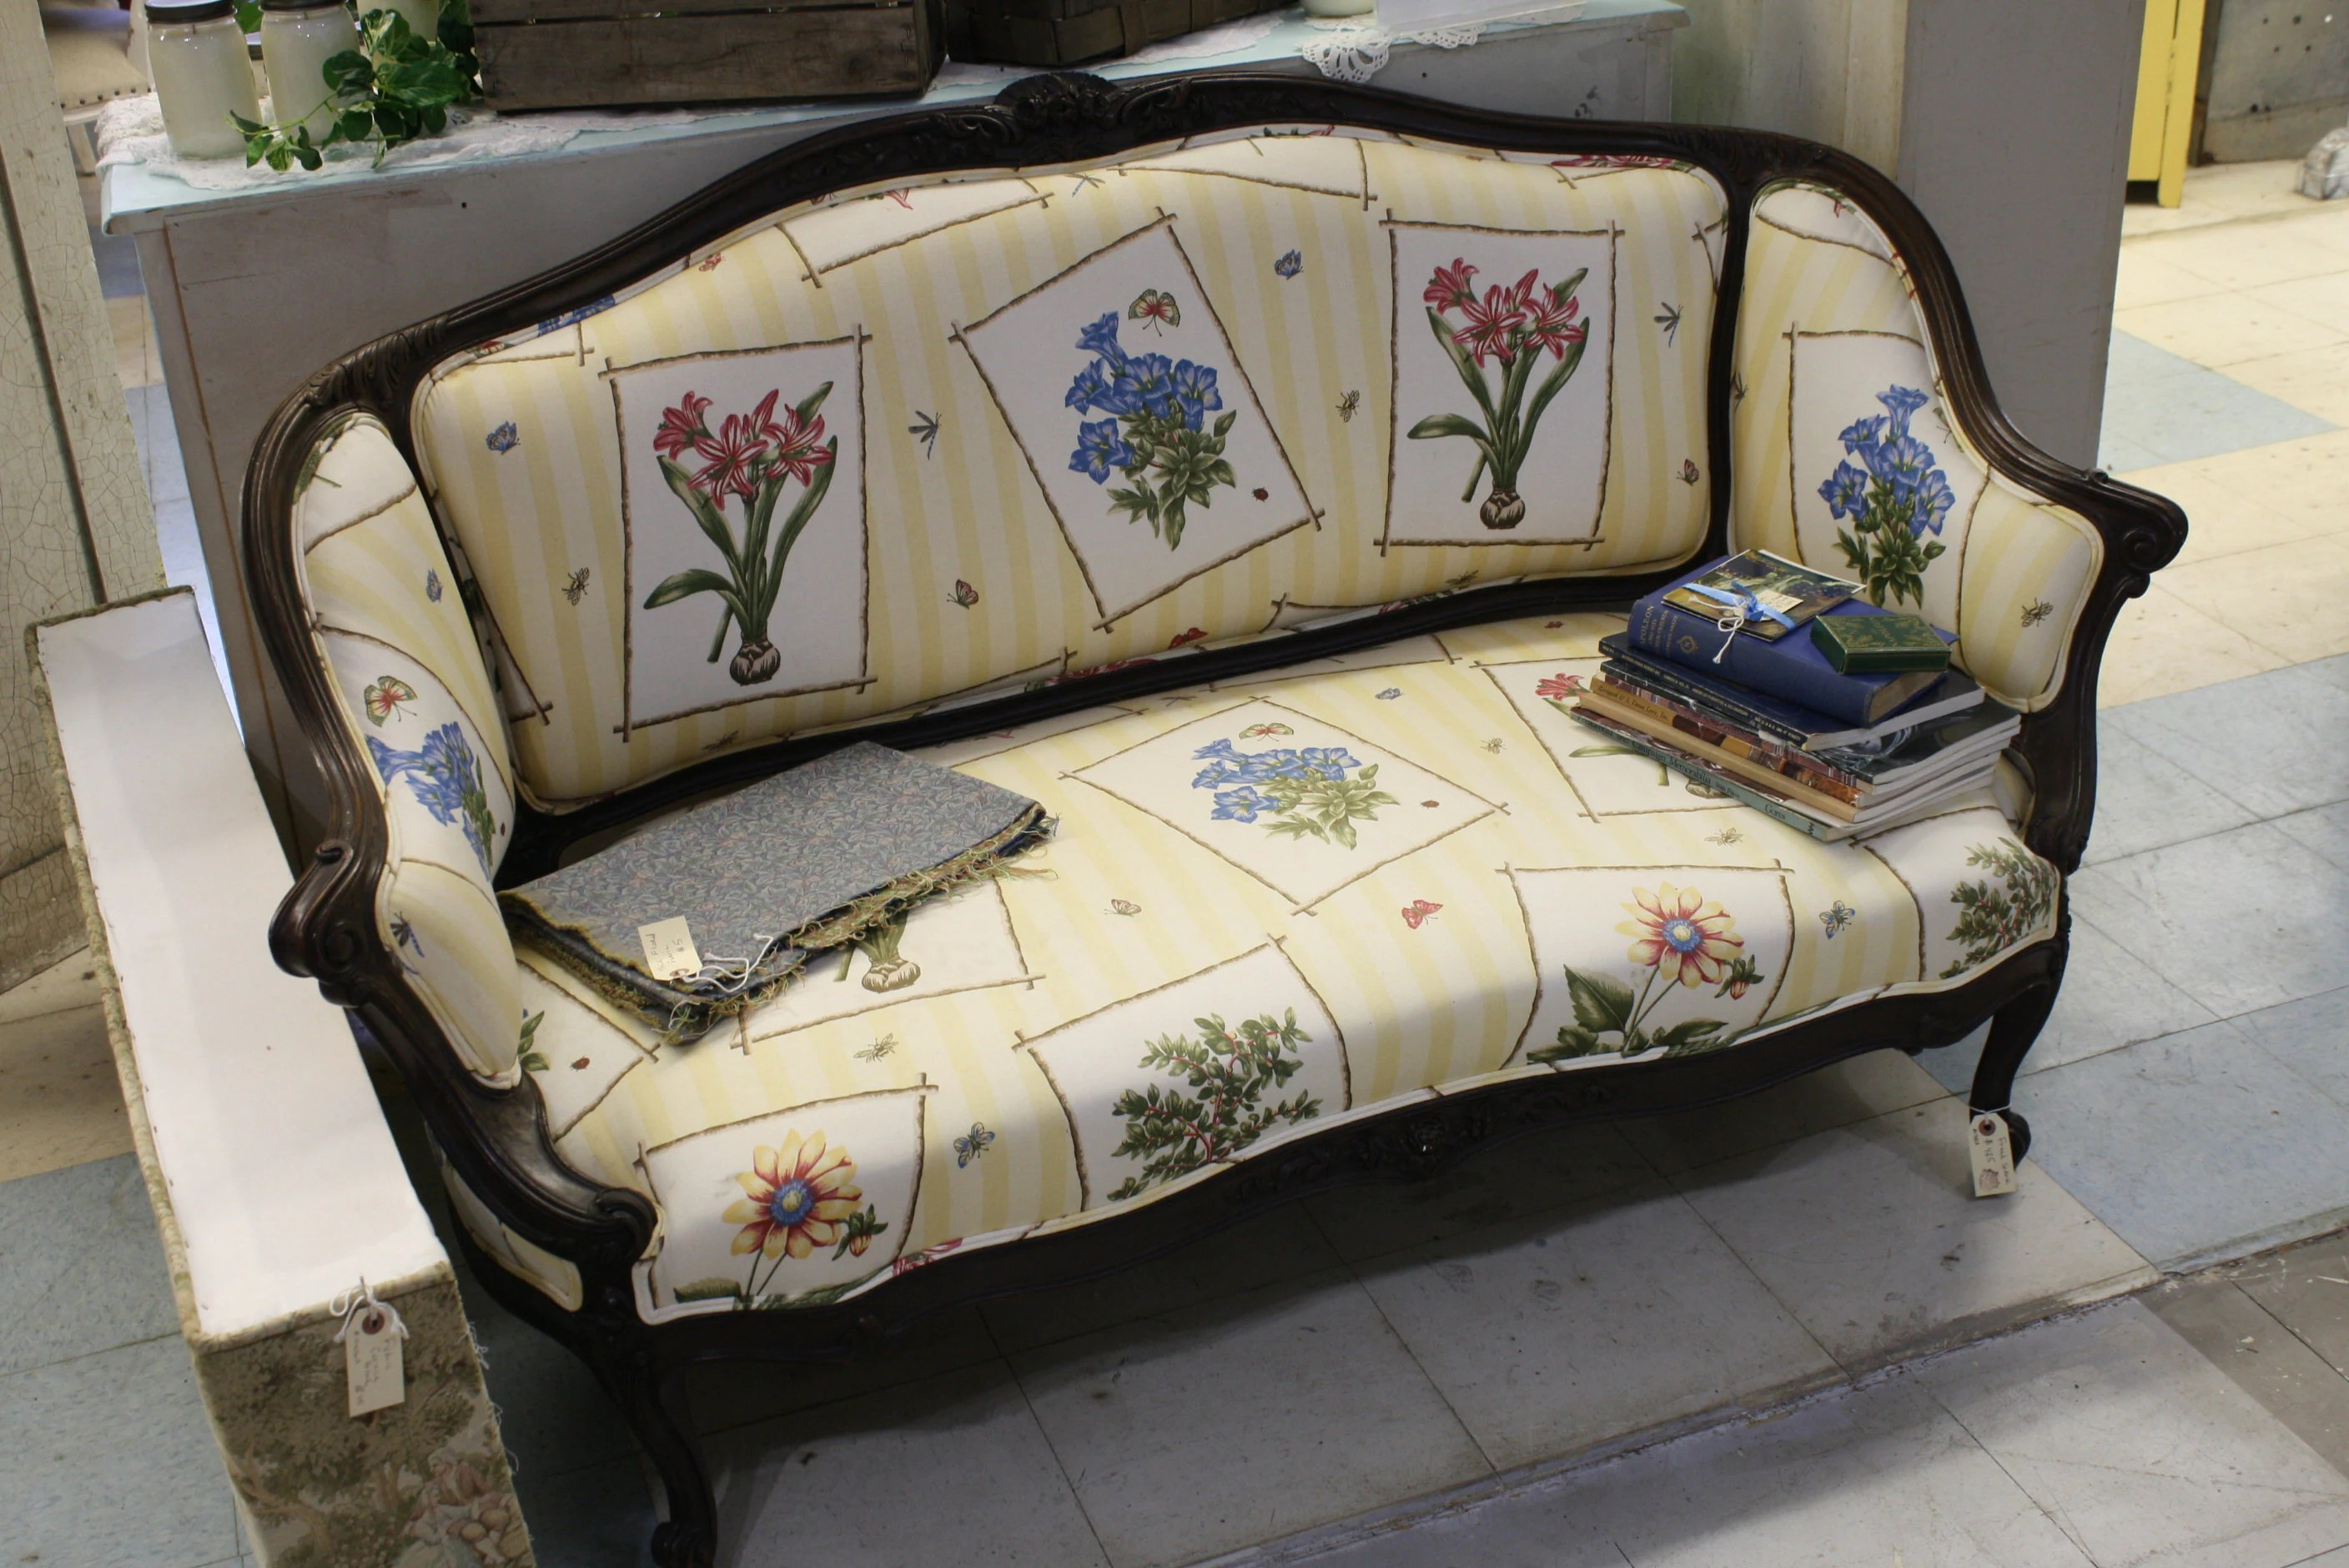 Settee Loveseat Victorian Sofa Settee Loveseat Carved Wood Frame Botanical Floral Upholstery Yellow Stripes English Vintage Antique Seating